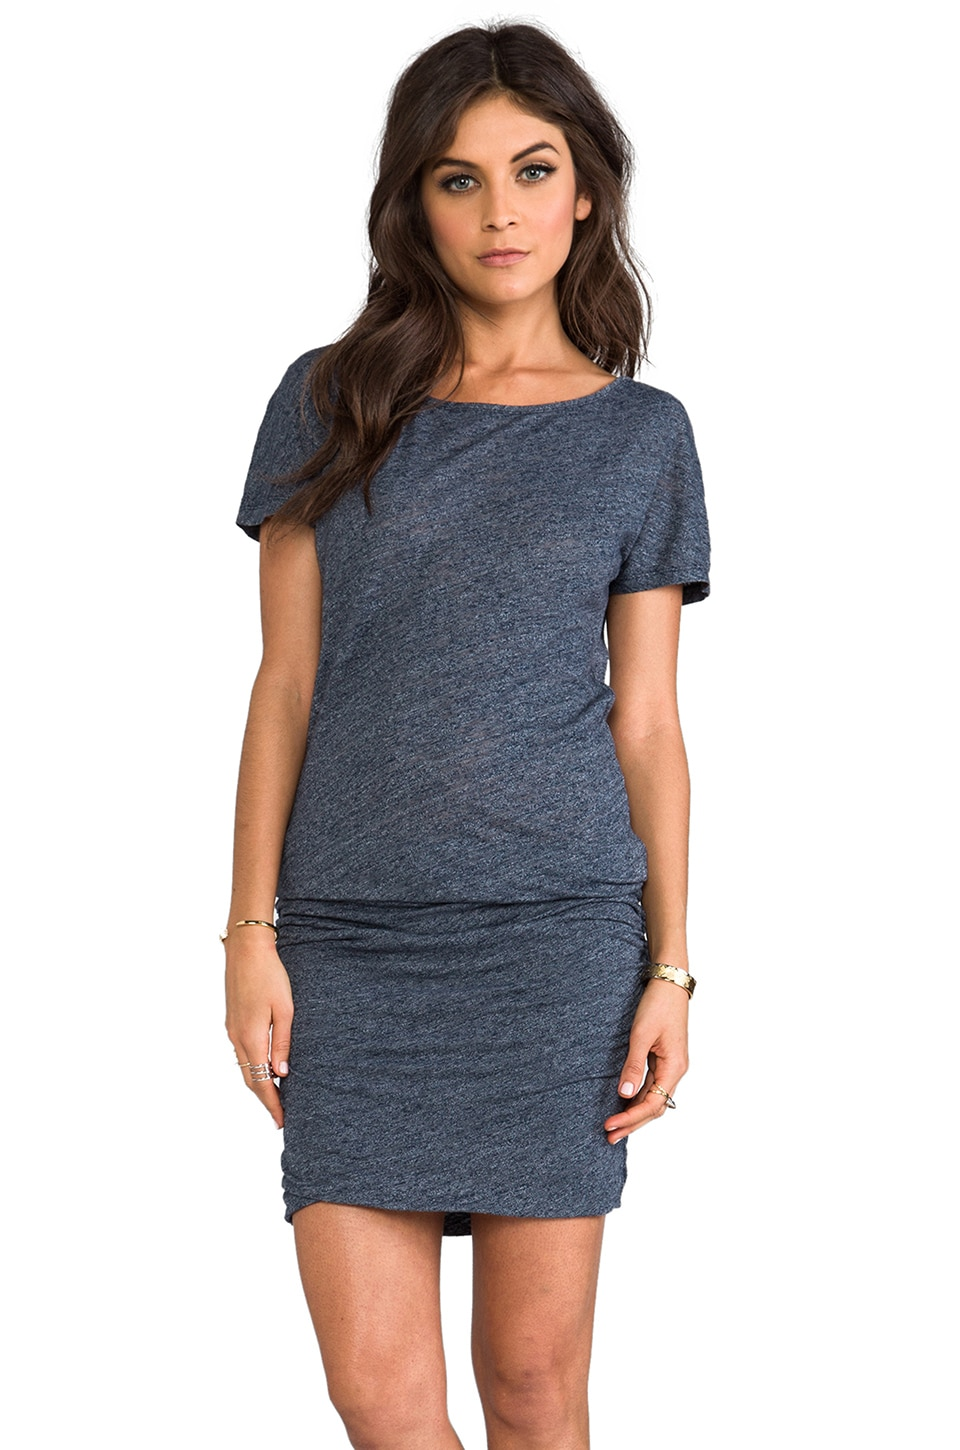 SUNDRY Boat Neck Dress in Marine